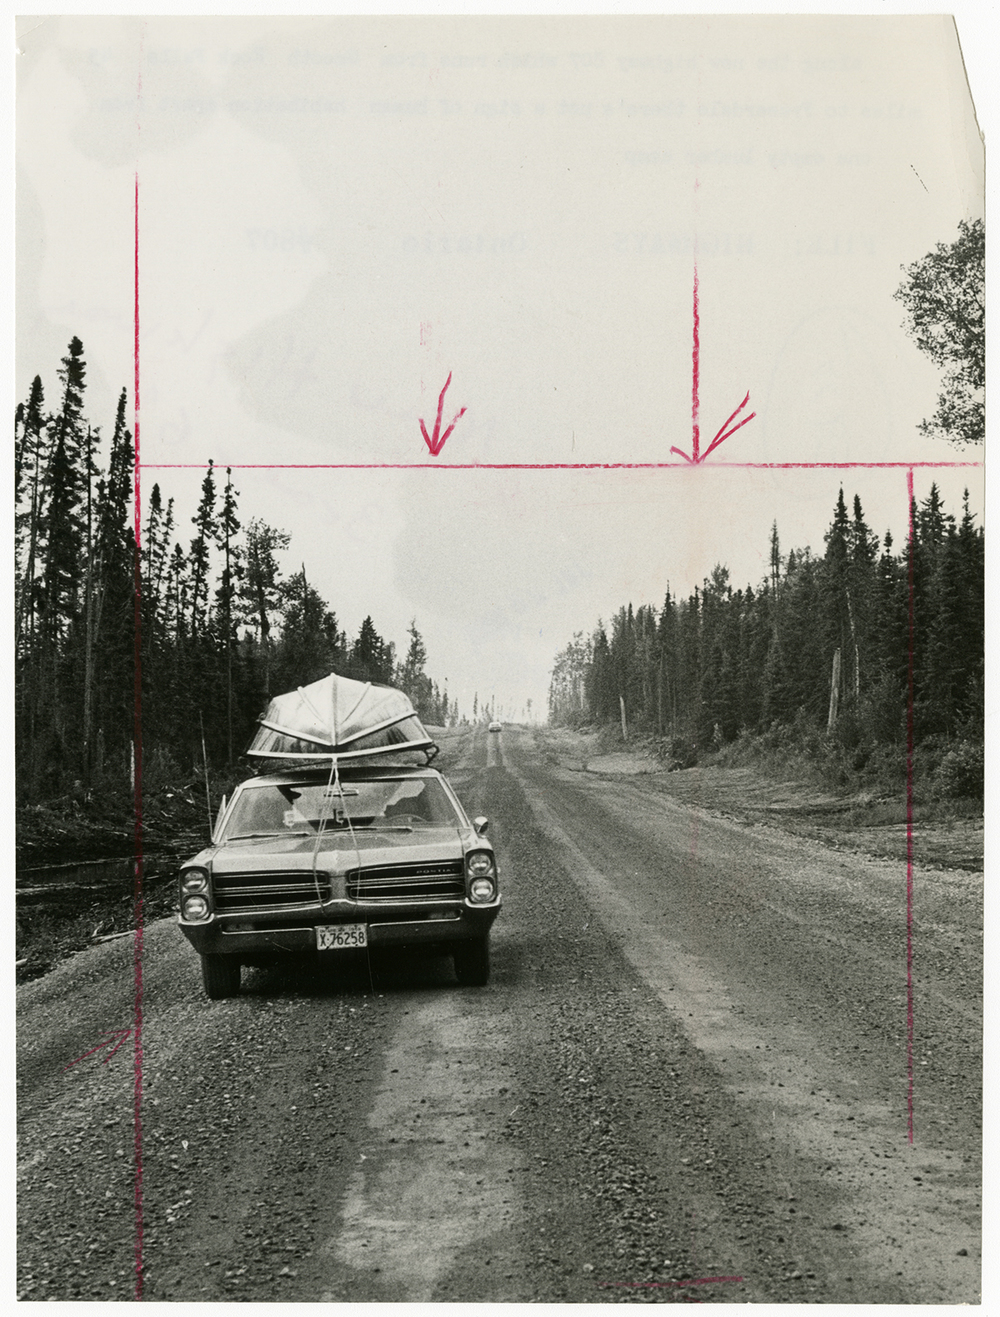 Unidentified Photographer,  Along the new highway, which runs from Smooth Rock Falls to Fraserdale, Ontario, there's no sign of human habitation apart from one empty lumber camp , c.1966. Gelatin Silver Print, 23.4 x17.5cm. Gift of The Globe and Mail Newspaper to the Canadian Photography Institute of the National Gallery of Canada.